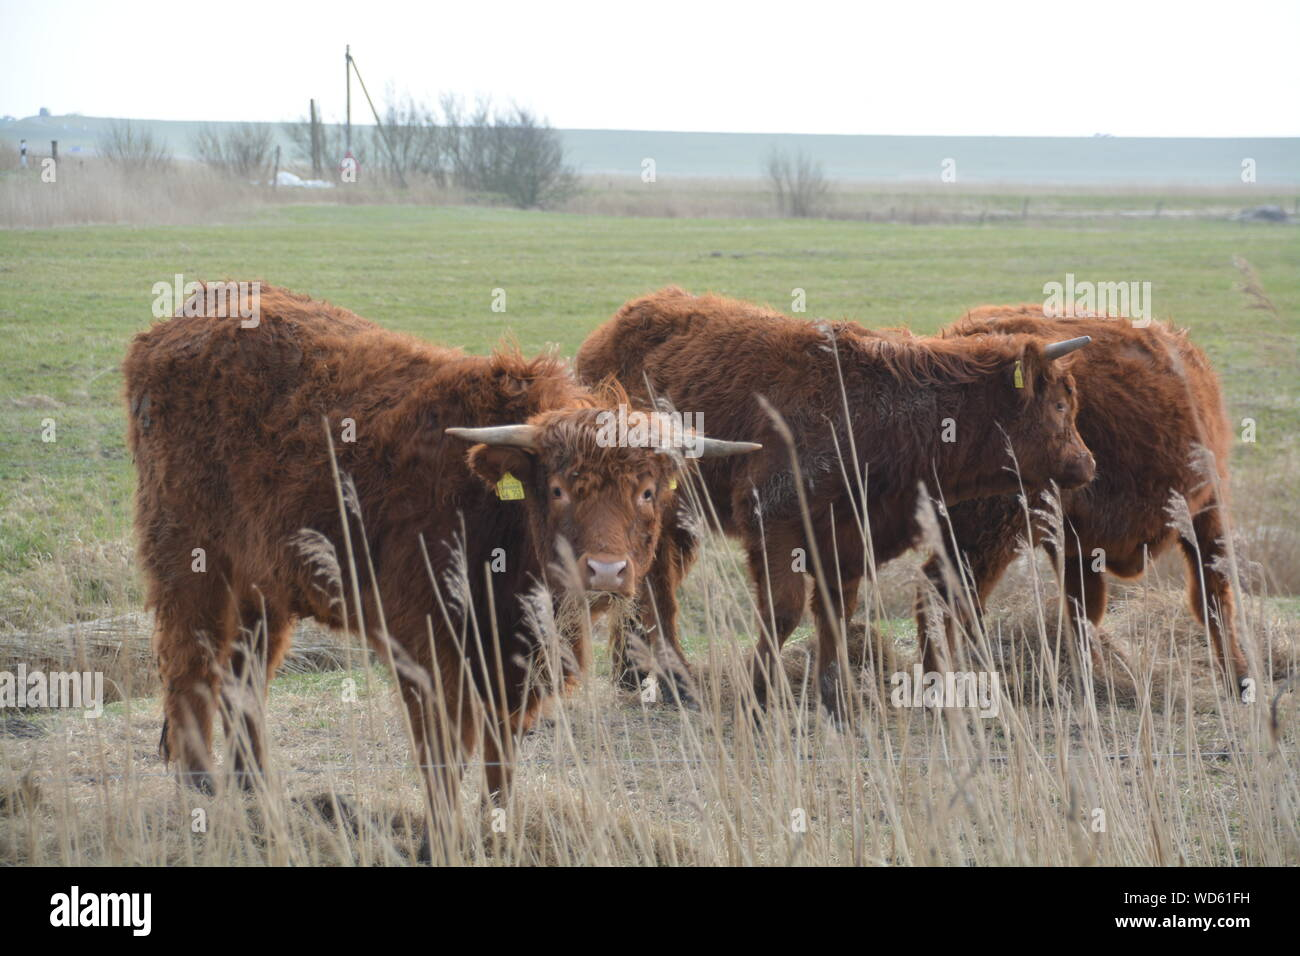 Cows Grazing On Grassy Field Stock Photo